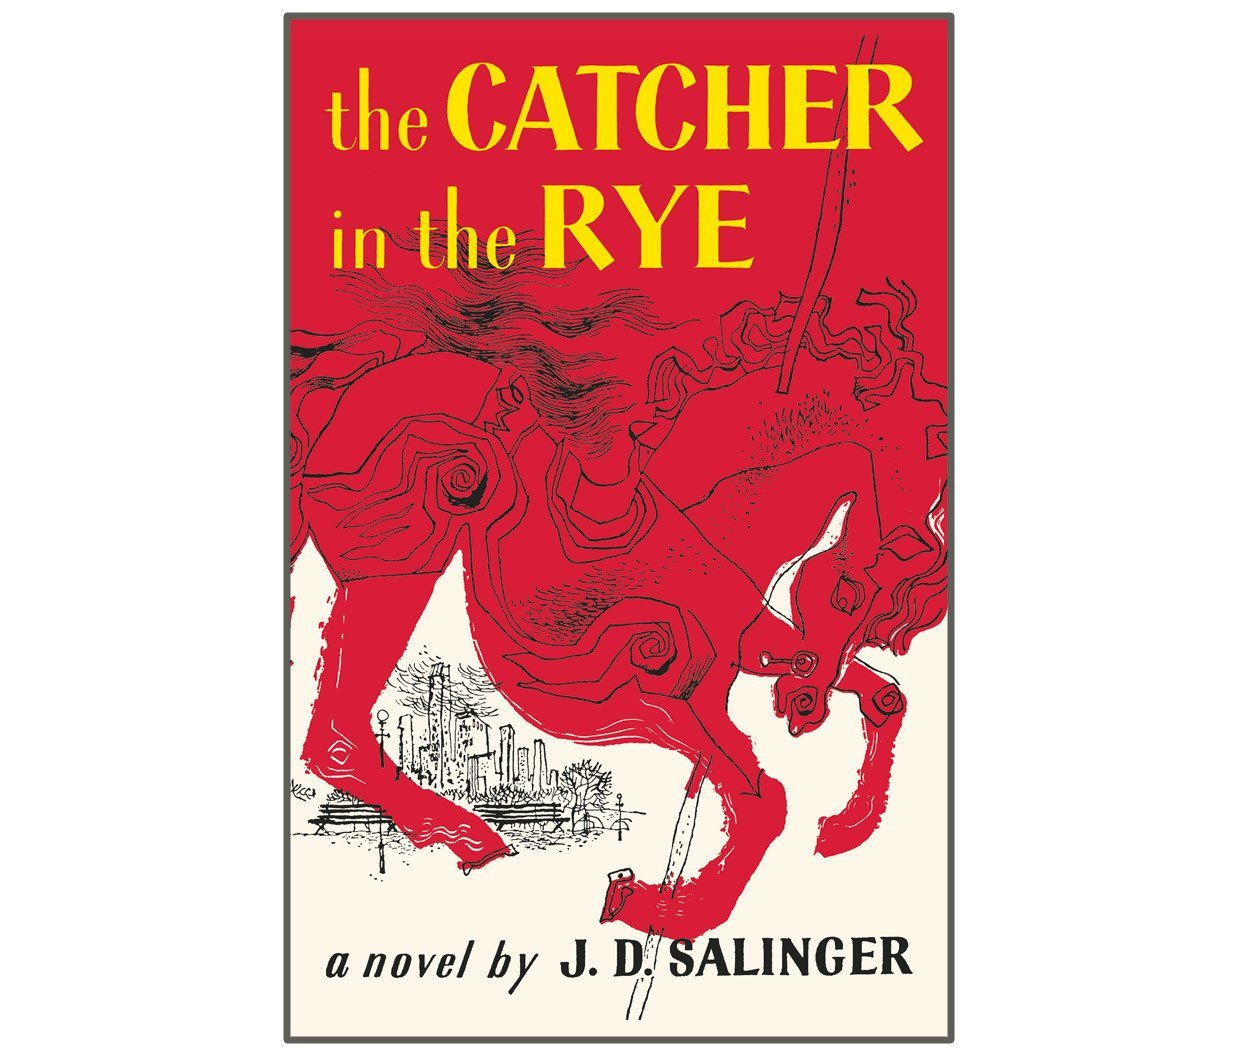 رواية The Catcher in the Rye للكاتب J.D. Salinger